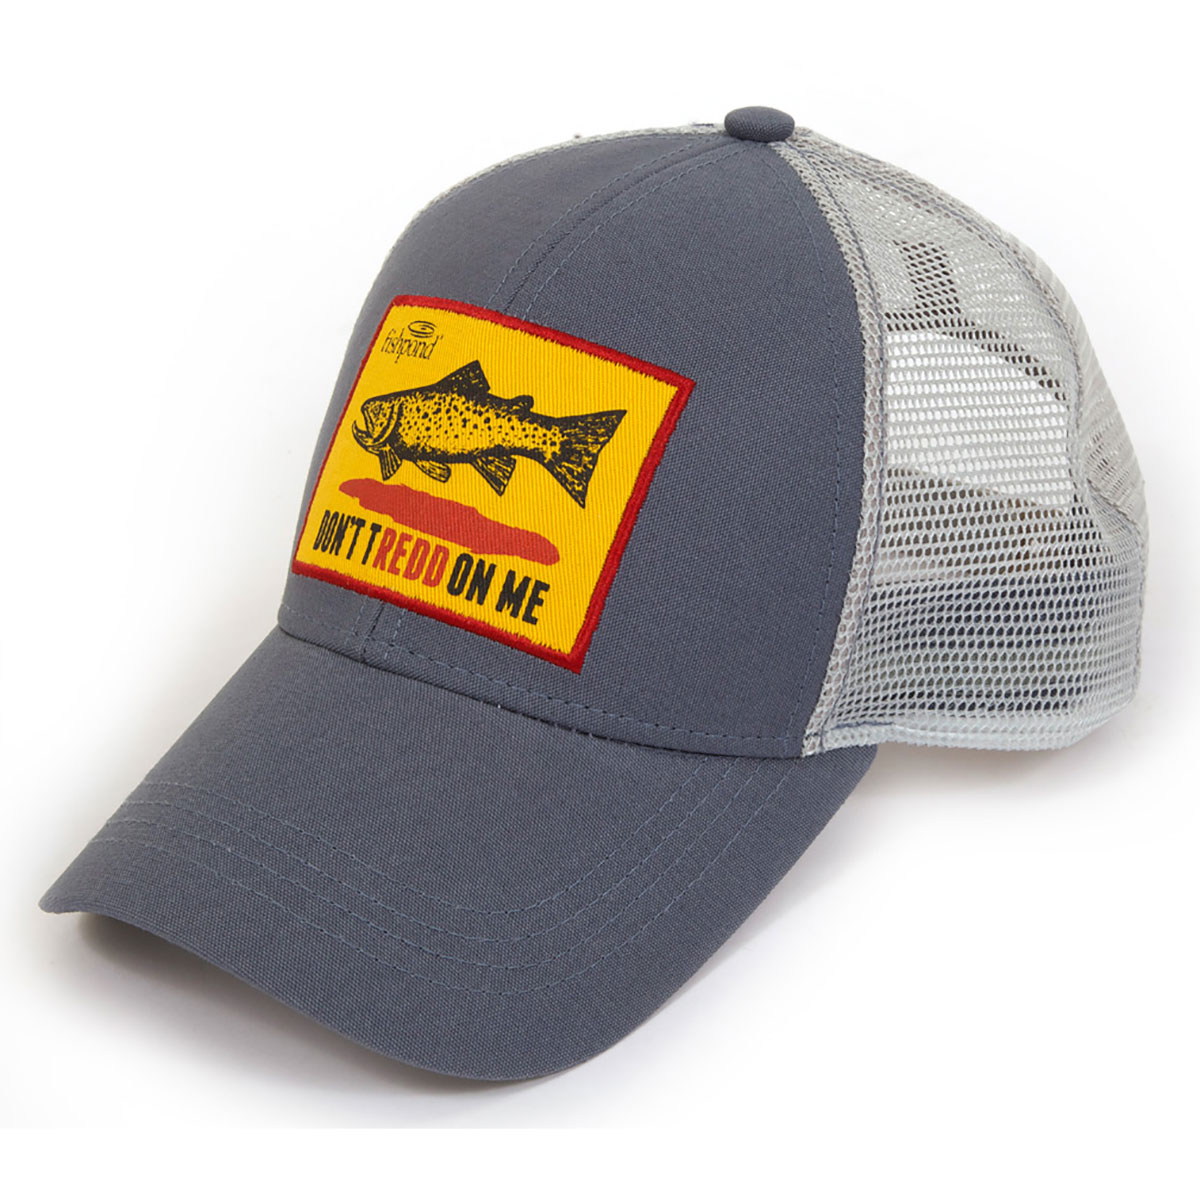 Fishpond don 39 t tredd logo adjustable hook and loop fly for Fishing logo hats